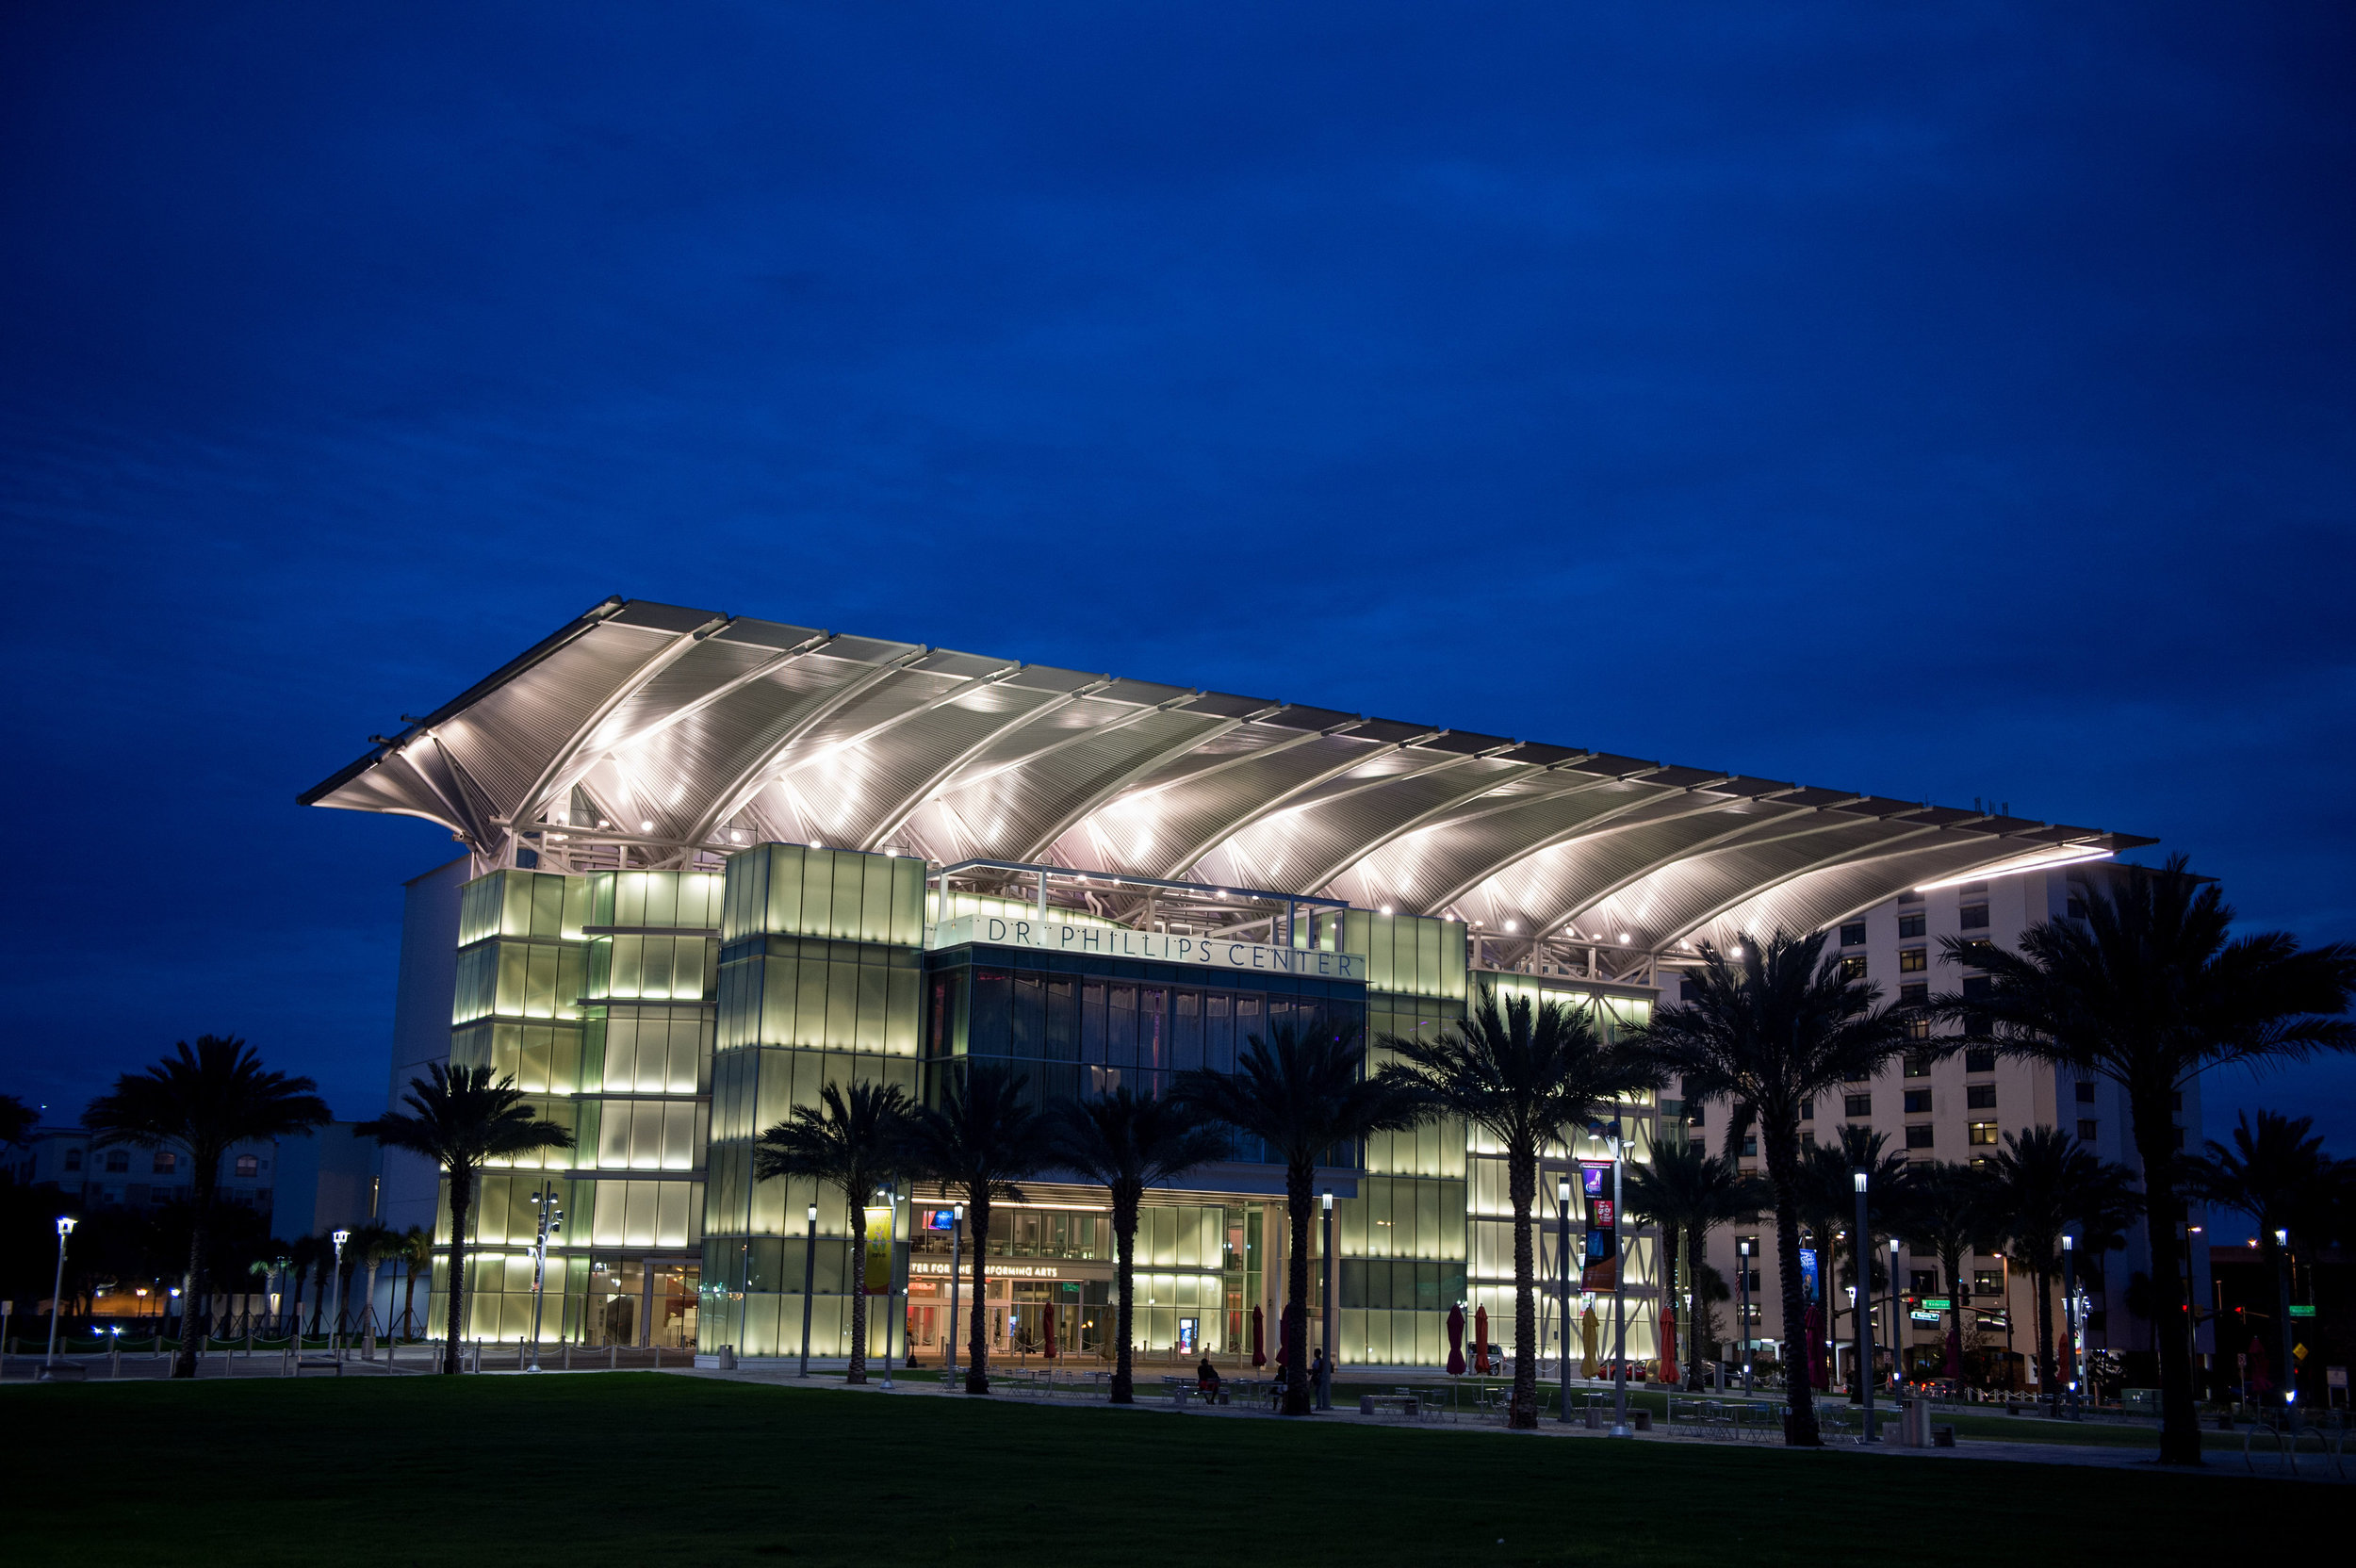 Dr. Phillips Center for the Performing Arts Wedding Venue Photos